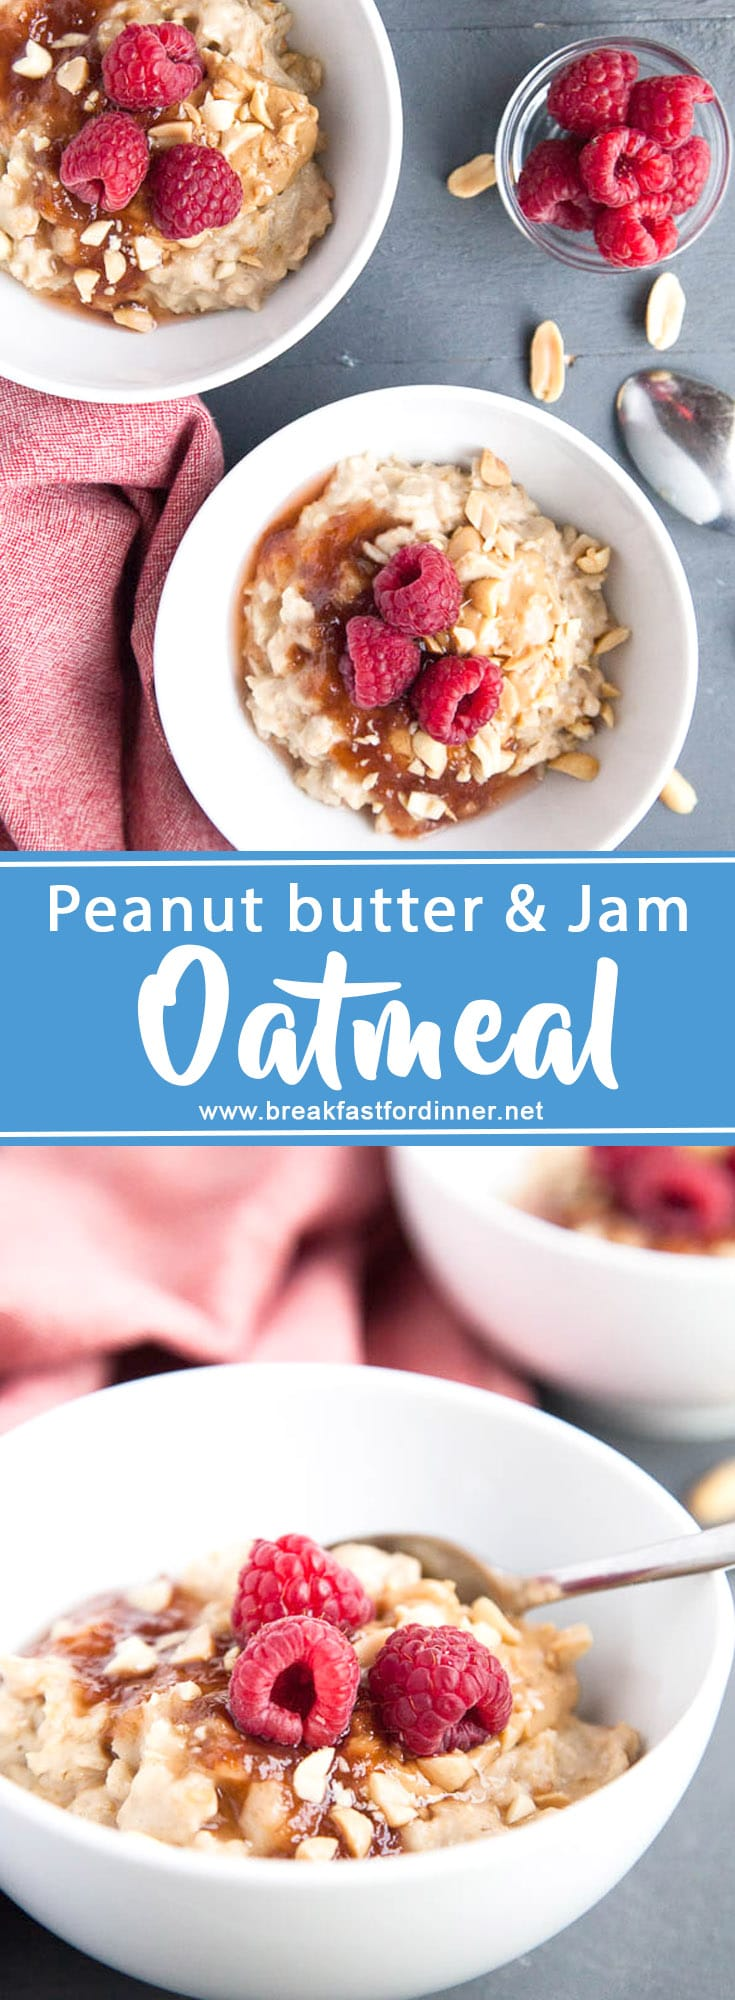 Peanut butter and jam isn't just a great sandwich - it makes a fun oatmeal! Like eating a sandwich with a spoon! ...Is that weird?